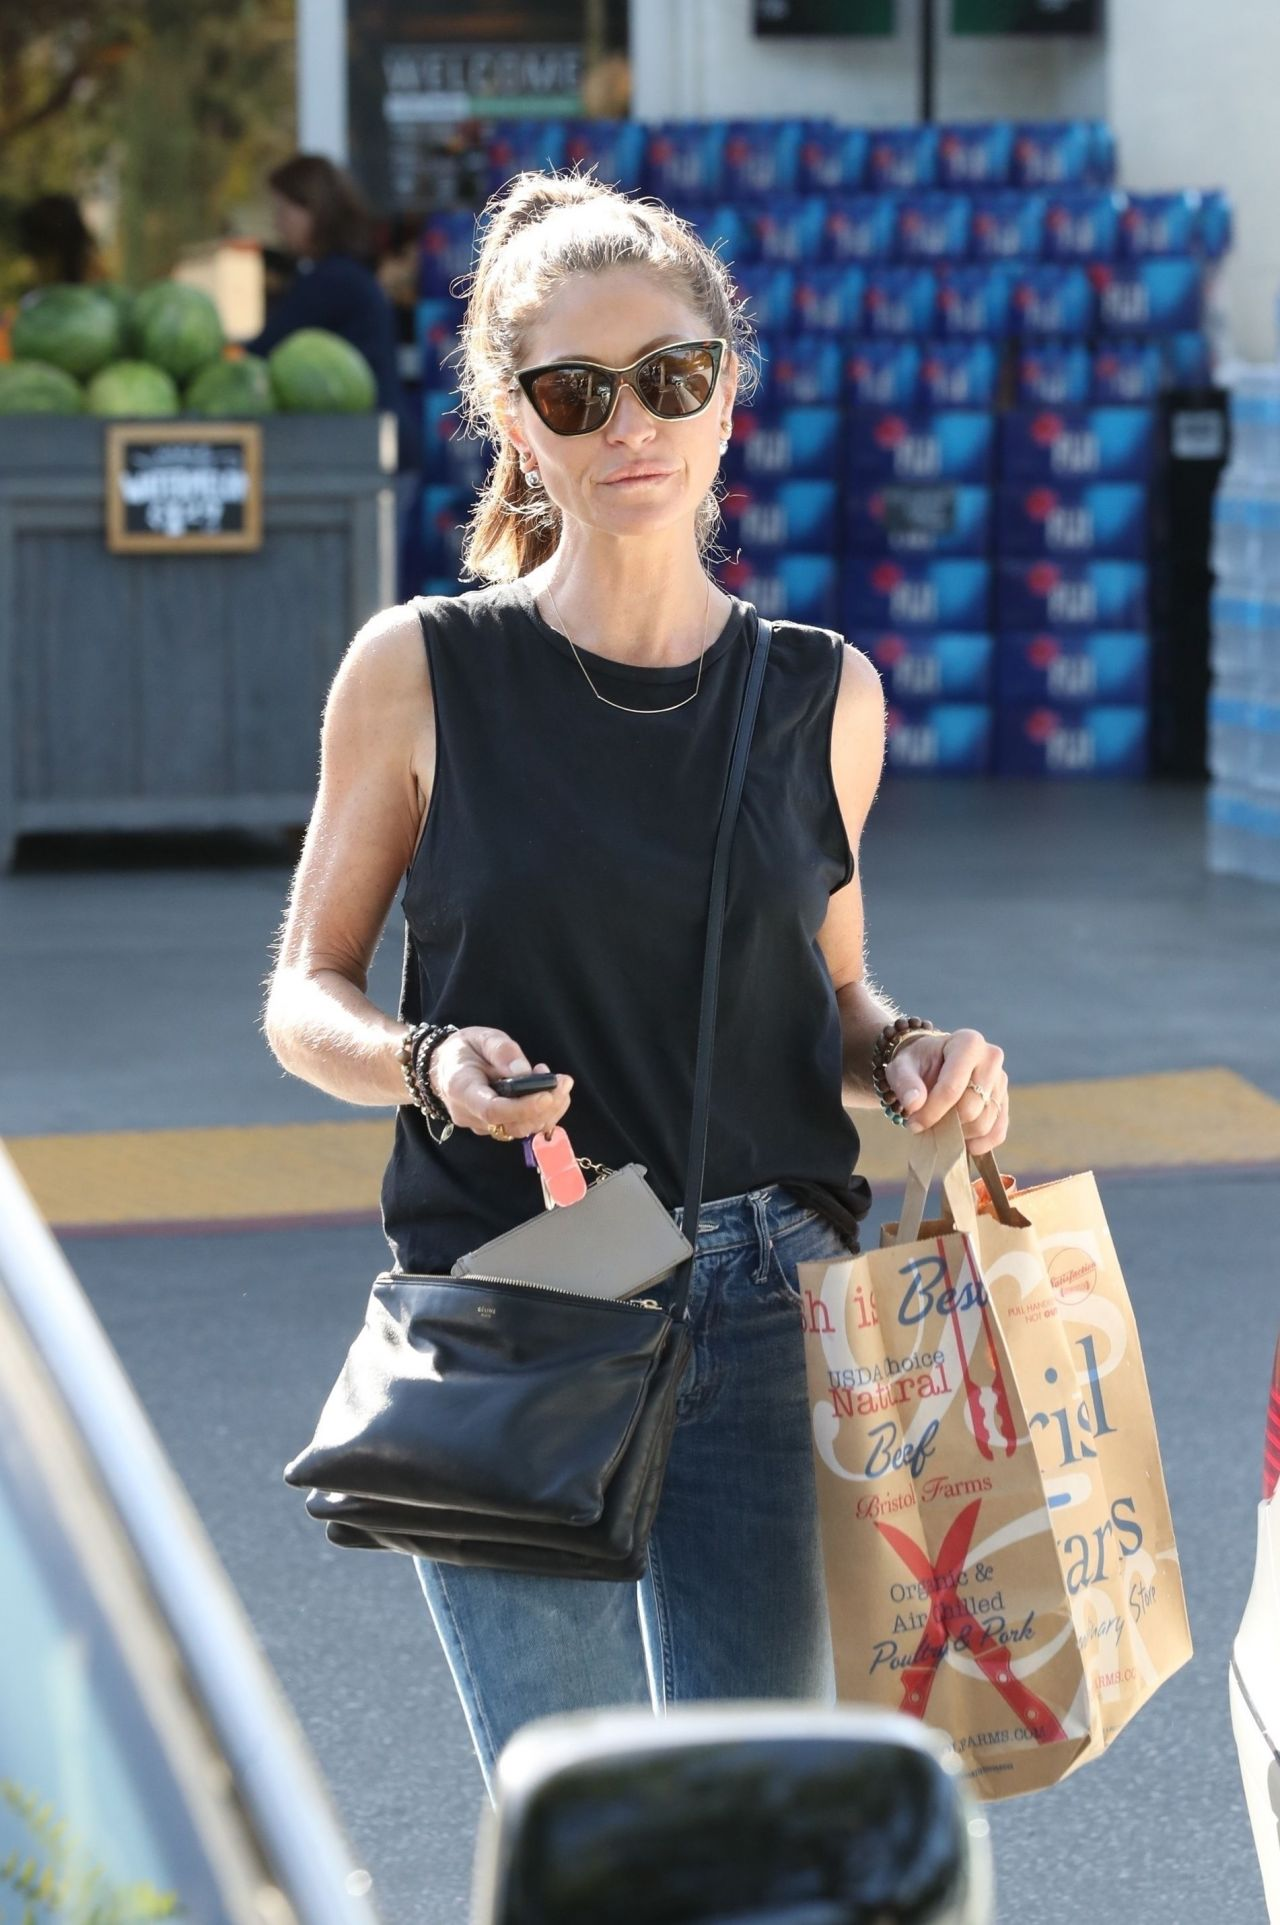 https://celebmafia.com/wp-content/uploads/2018/04/rebecca-gayheart-grocery-shopping-in-los-angeles-04-14-2018-3.jpg